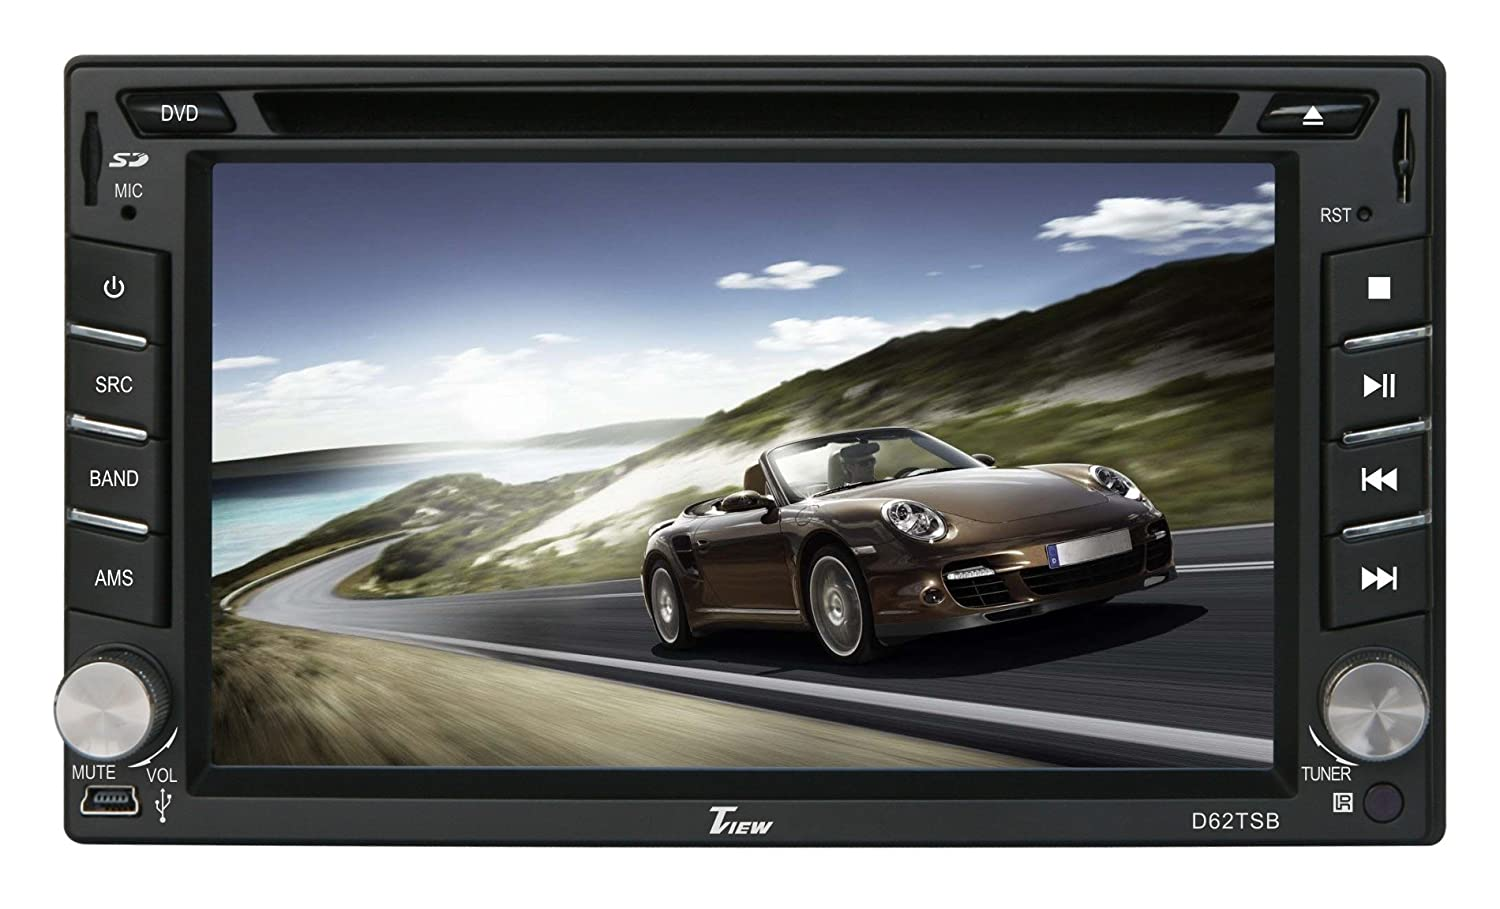 71N8 eVkMJL._SL1500_ amazon com tview d62tsb 6 2 inch double din touch screen with  at gsmx.co